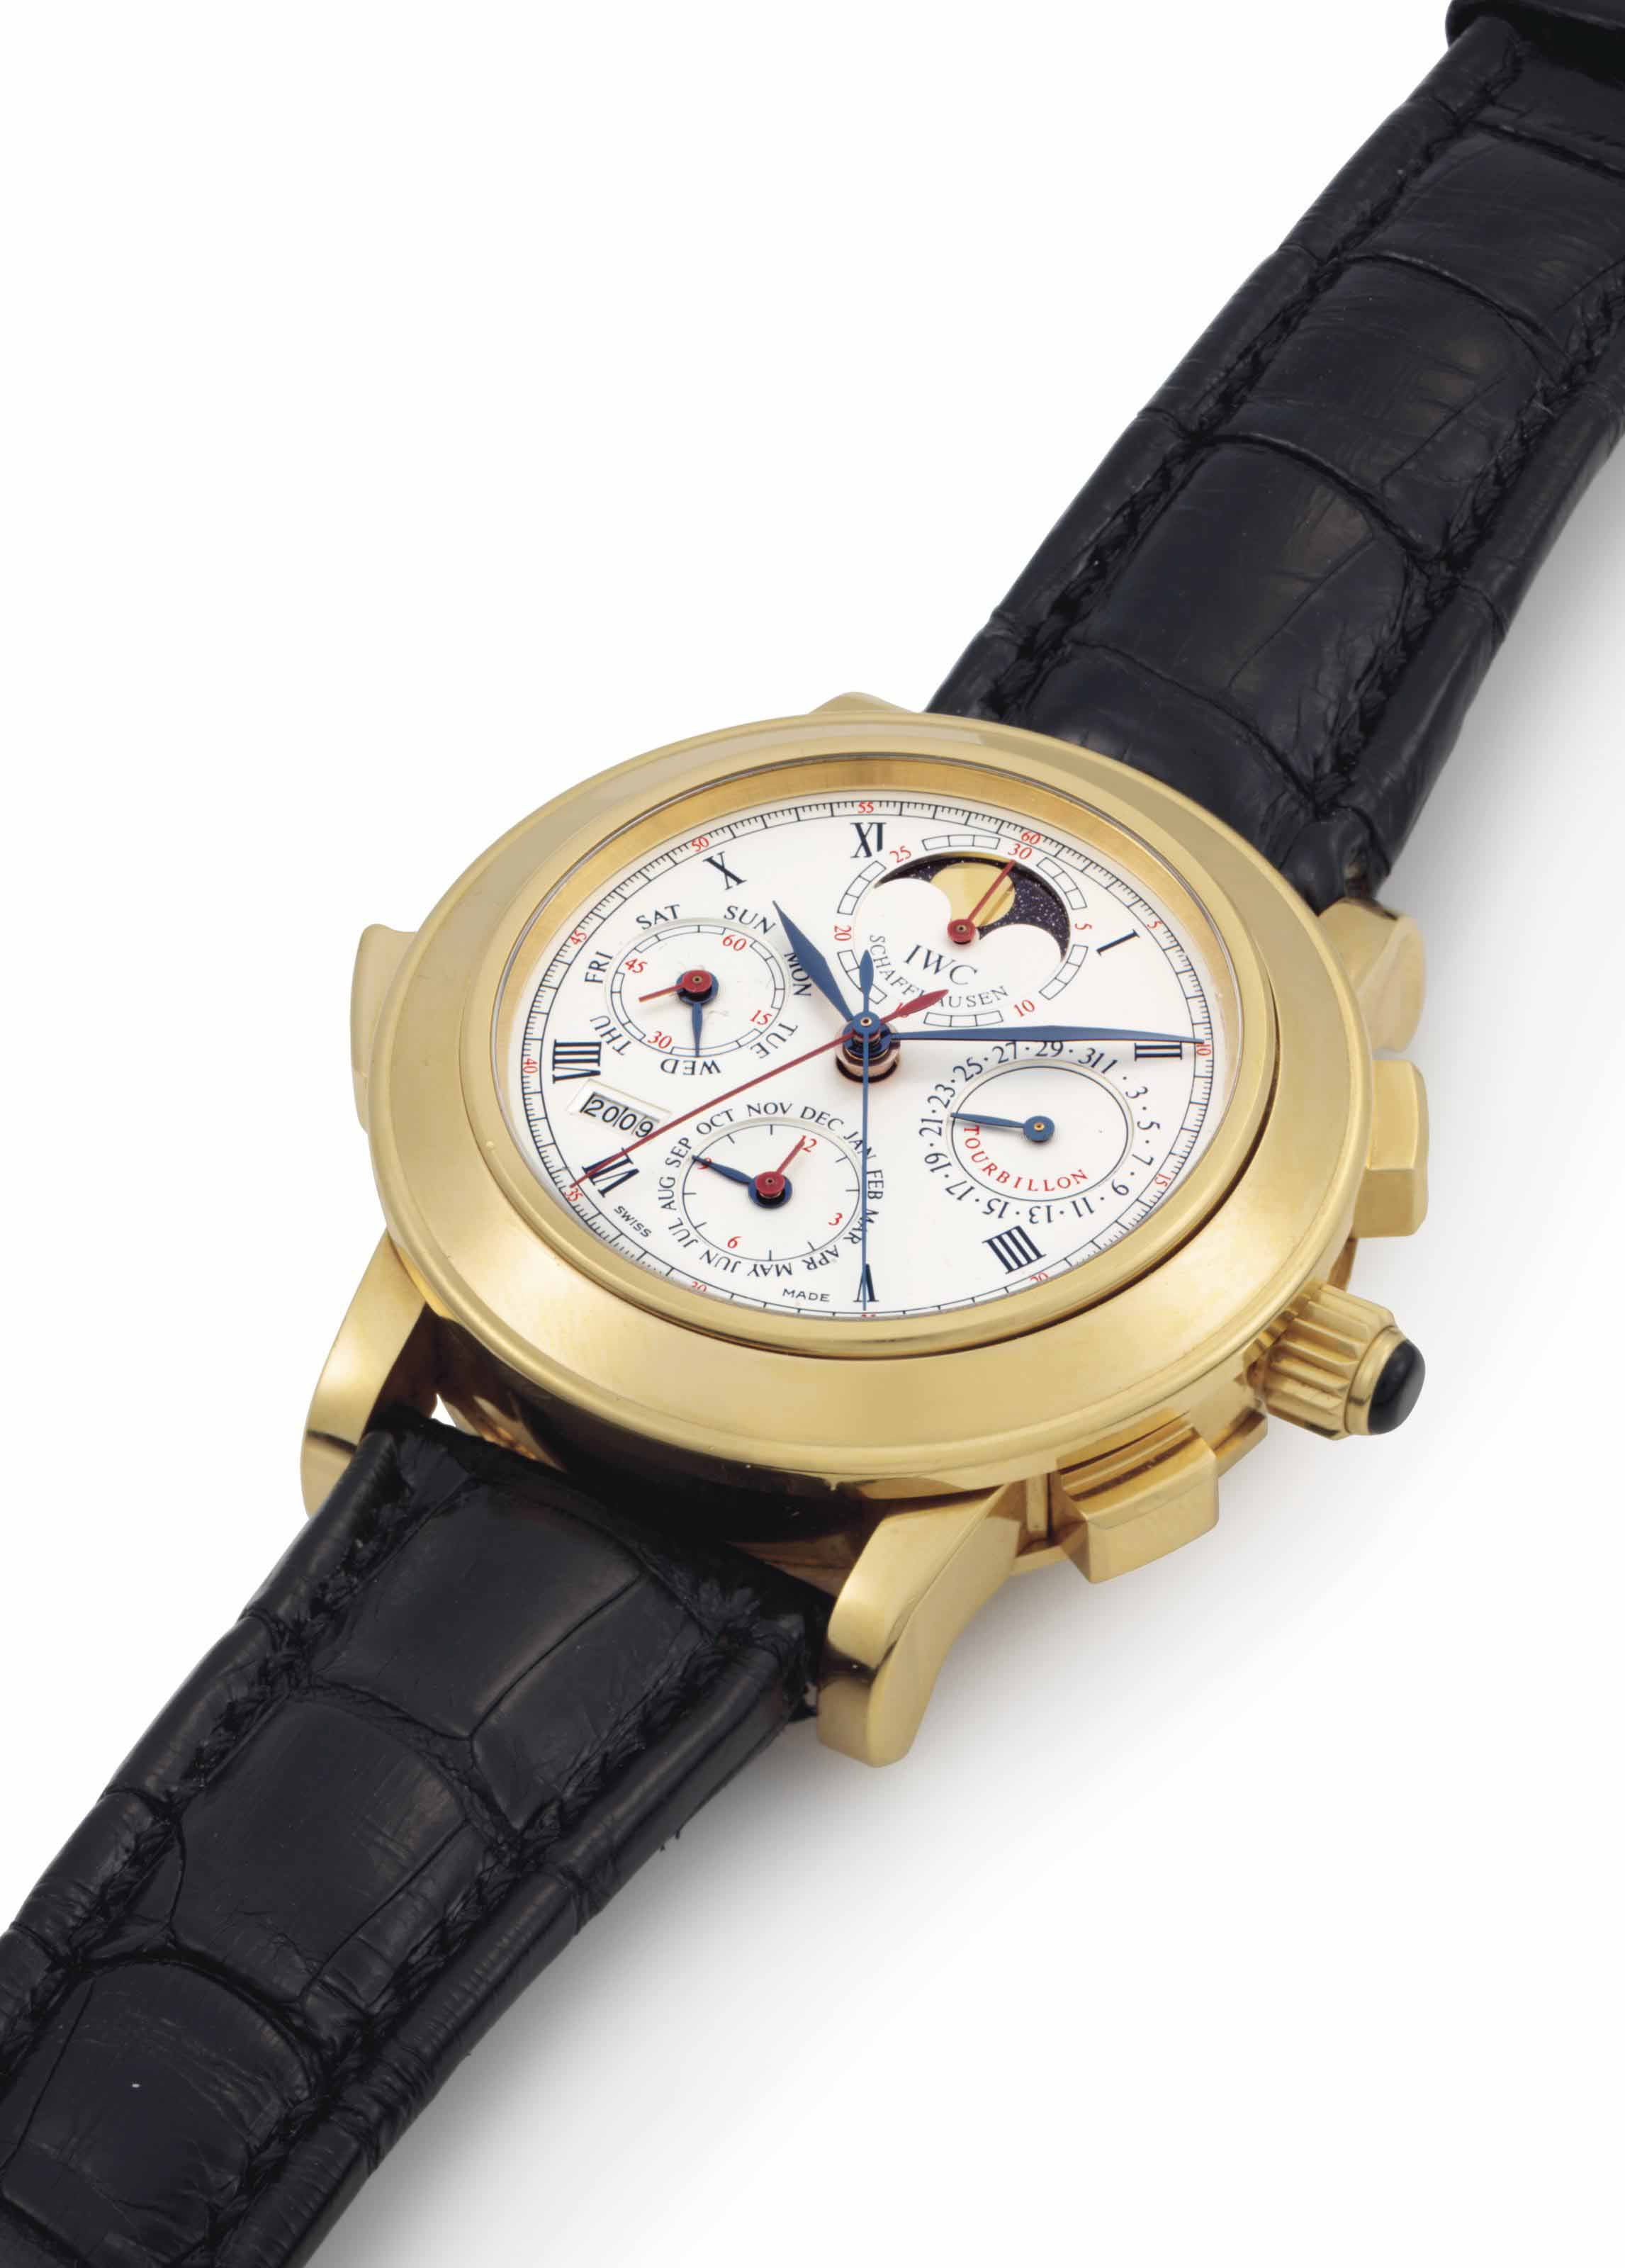 IWC. A Very Rare, Fine and Large 18k Gold Limited Edition Perpetual Calendar Minute Repeating Split Second Chronograph Tourbillon Wristwatch with Digital Year Display and Moon Phases